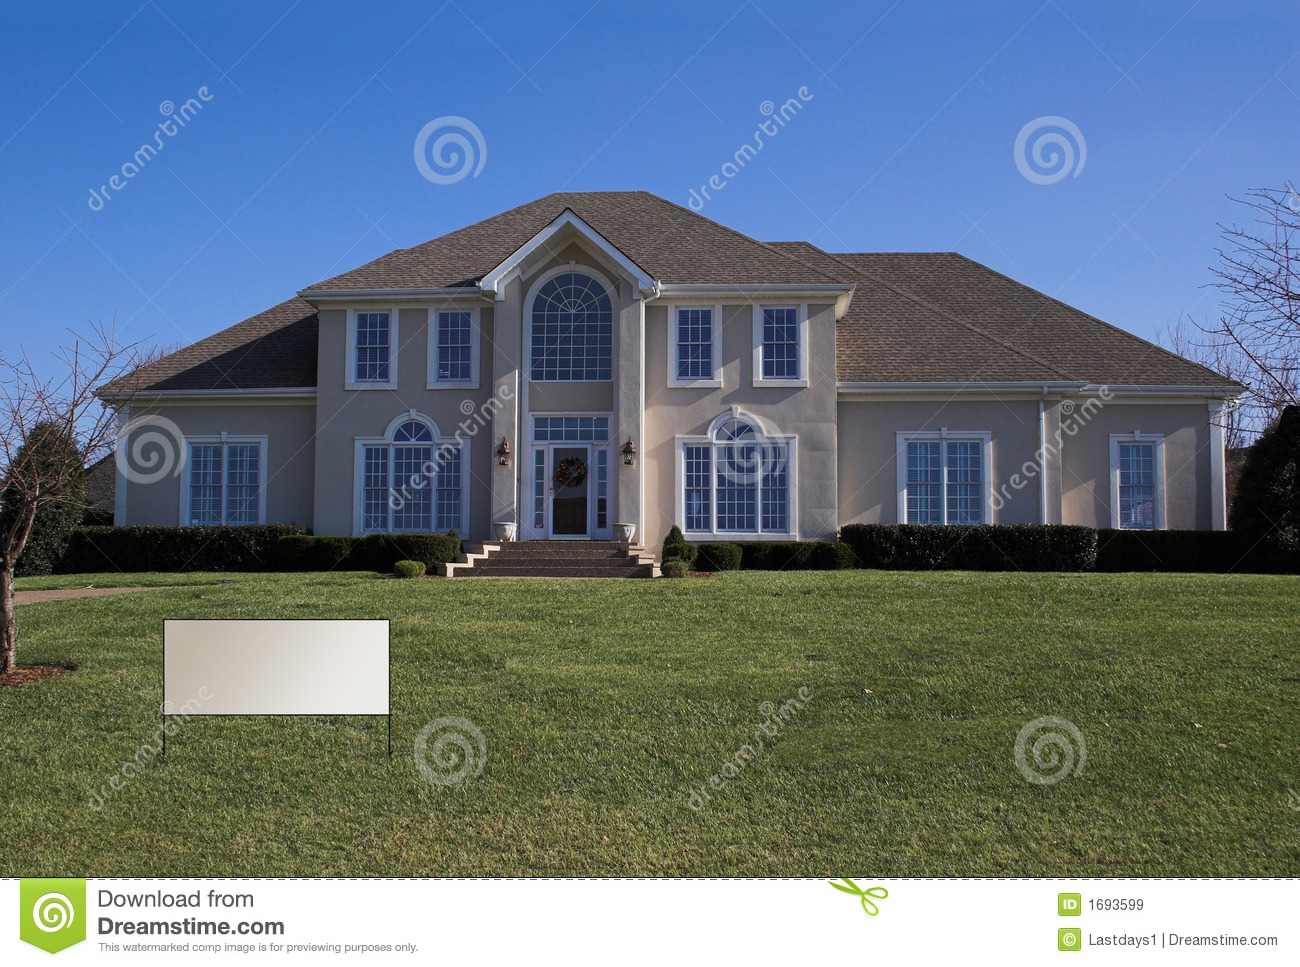 Beautiful homes series b4 royalty free stock images - A beautiful home ...